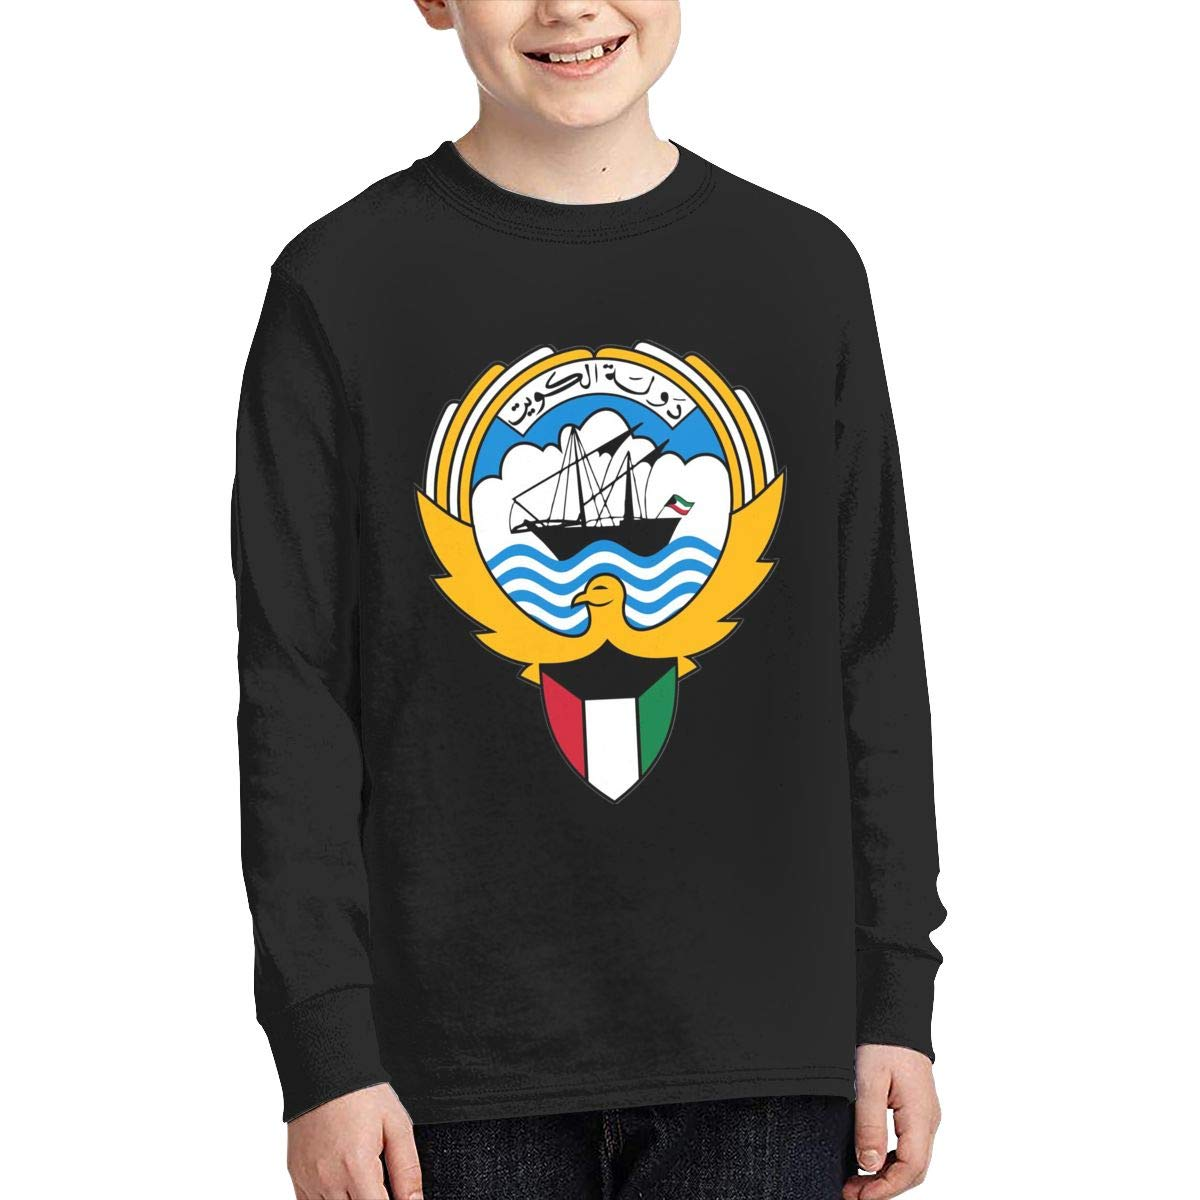 Youth Long Sleeve Moisture Wicking Athletic T Shirts Casual Tee Graphic Tops for Teen Boys Girls Coat of Arms of Kuwait